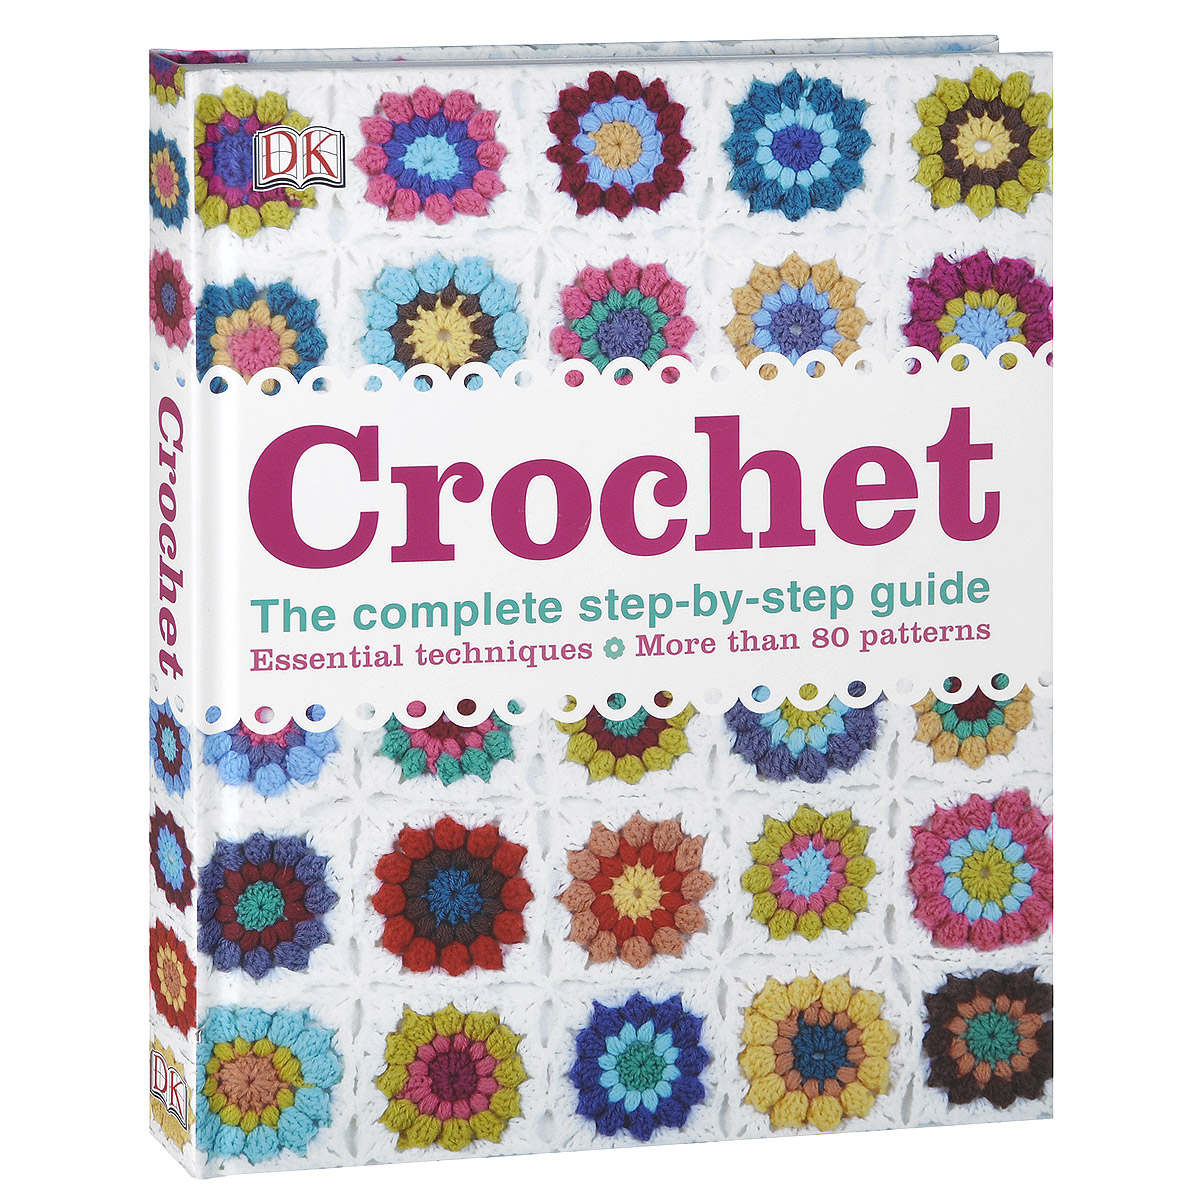 Crochet woodwork a step by step photographic guide to successful woodworking